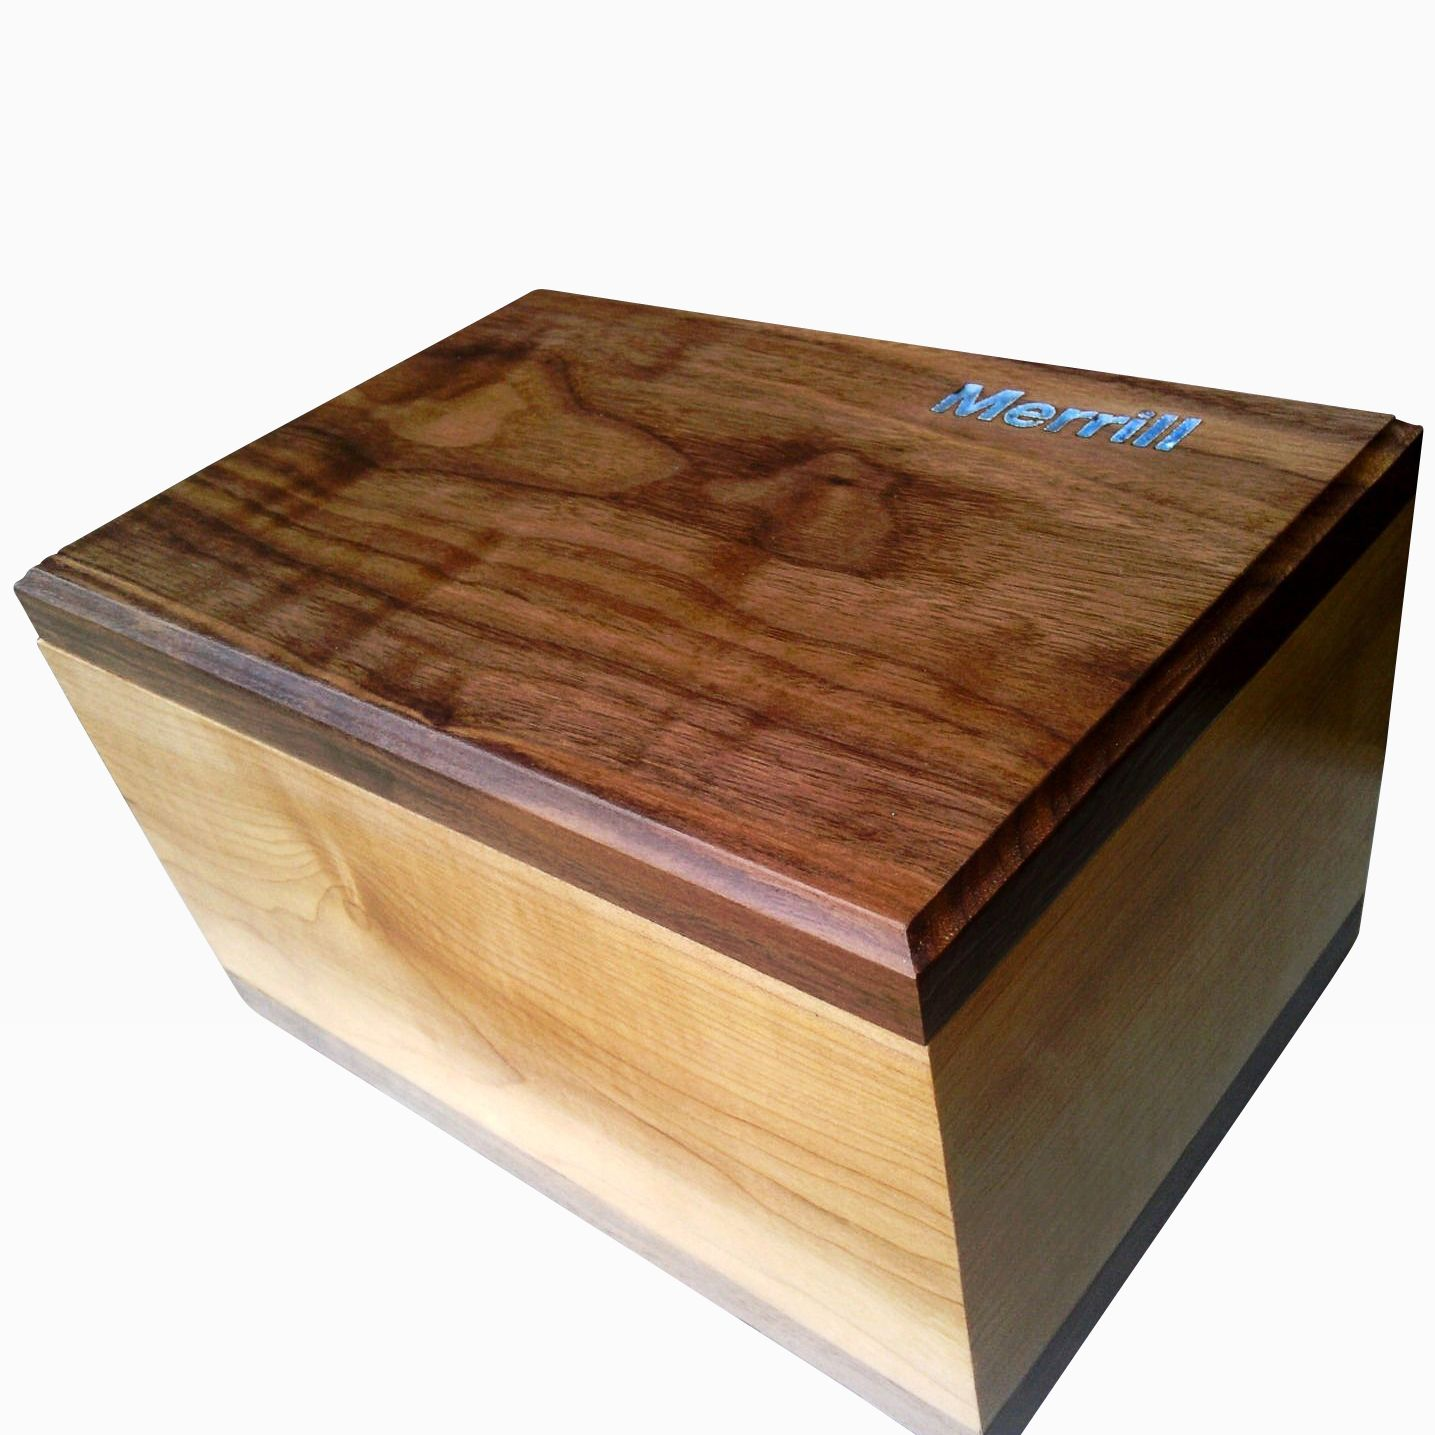 maple and walnut keepsake box with turquoise inlay